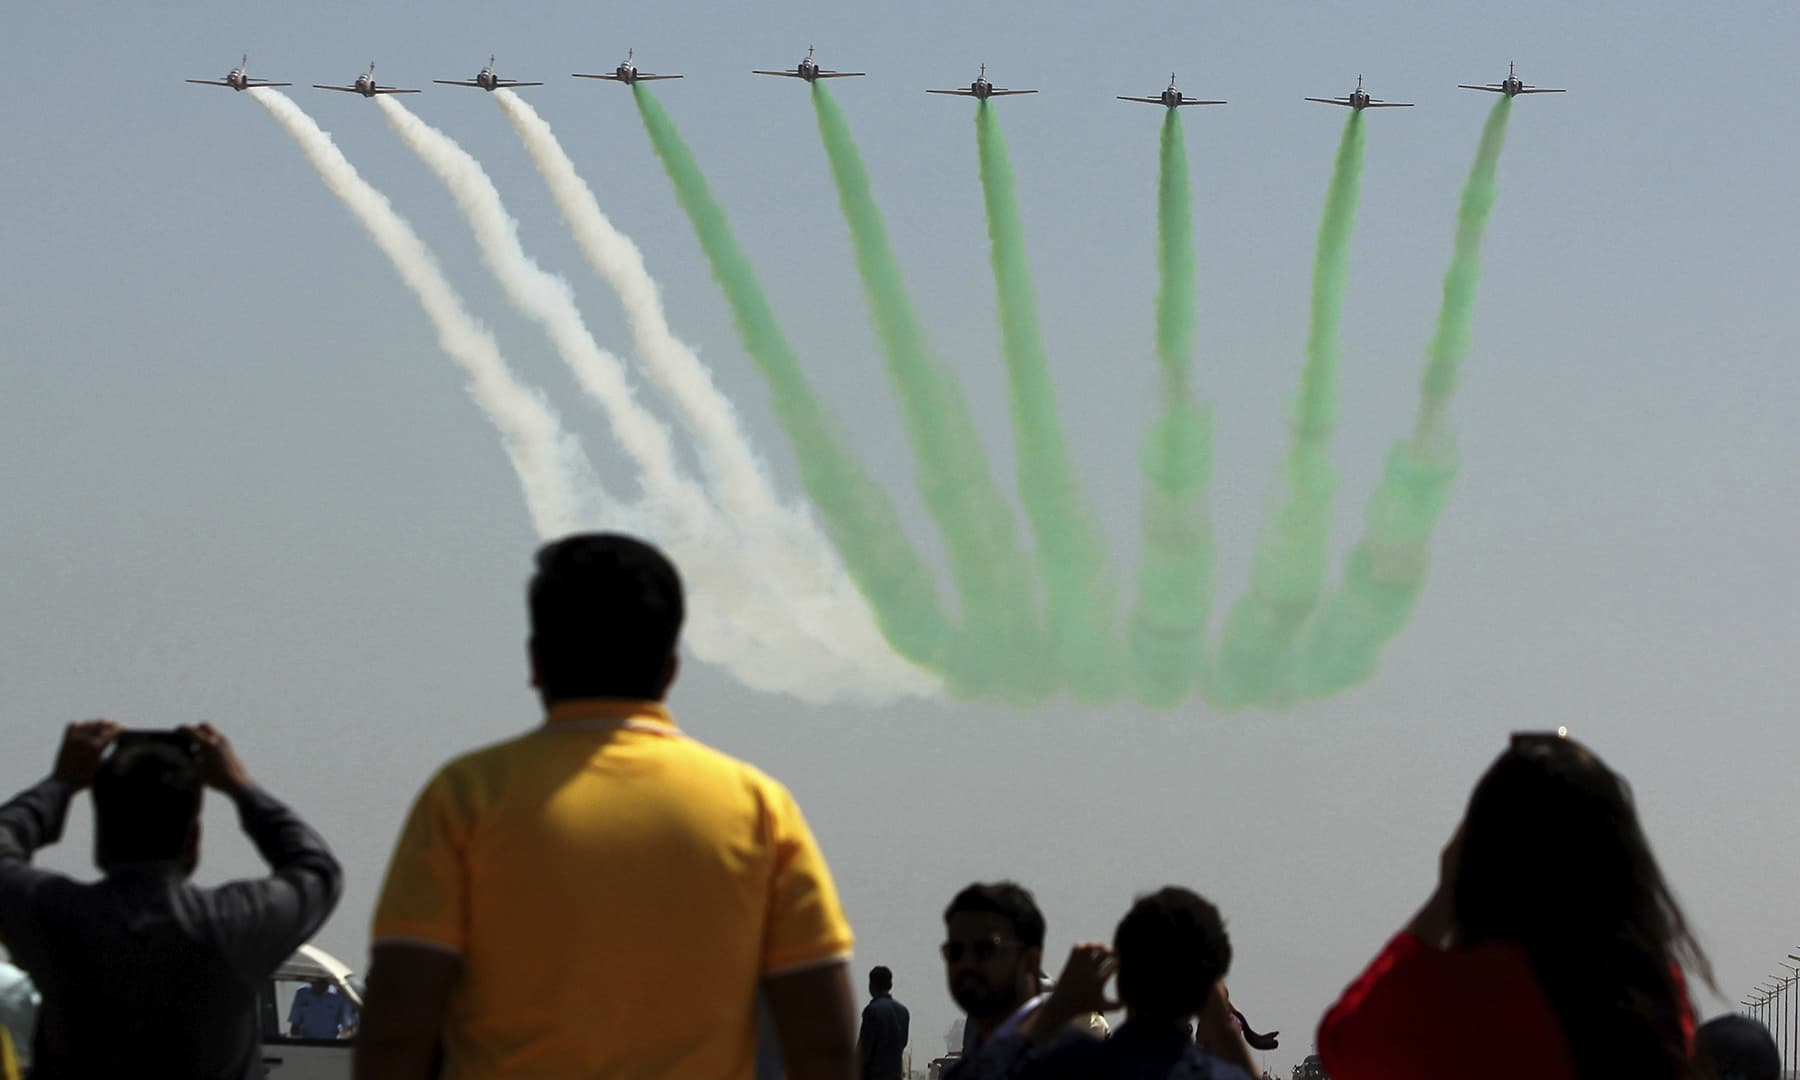 PAF fighter jets perform an aerobatic show to mark the first anniversary of 'Operation Swift Retort' in Karachi. — AP